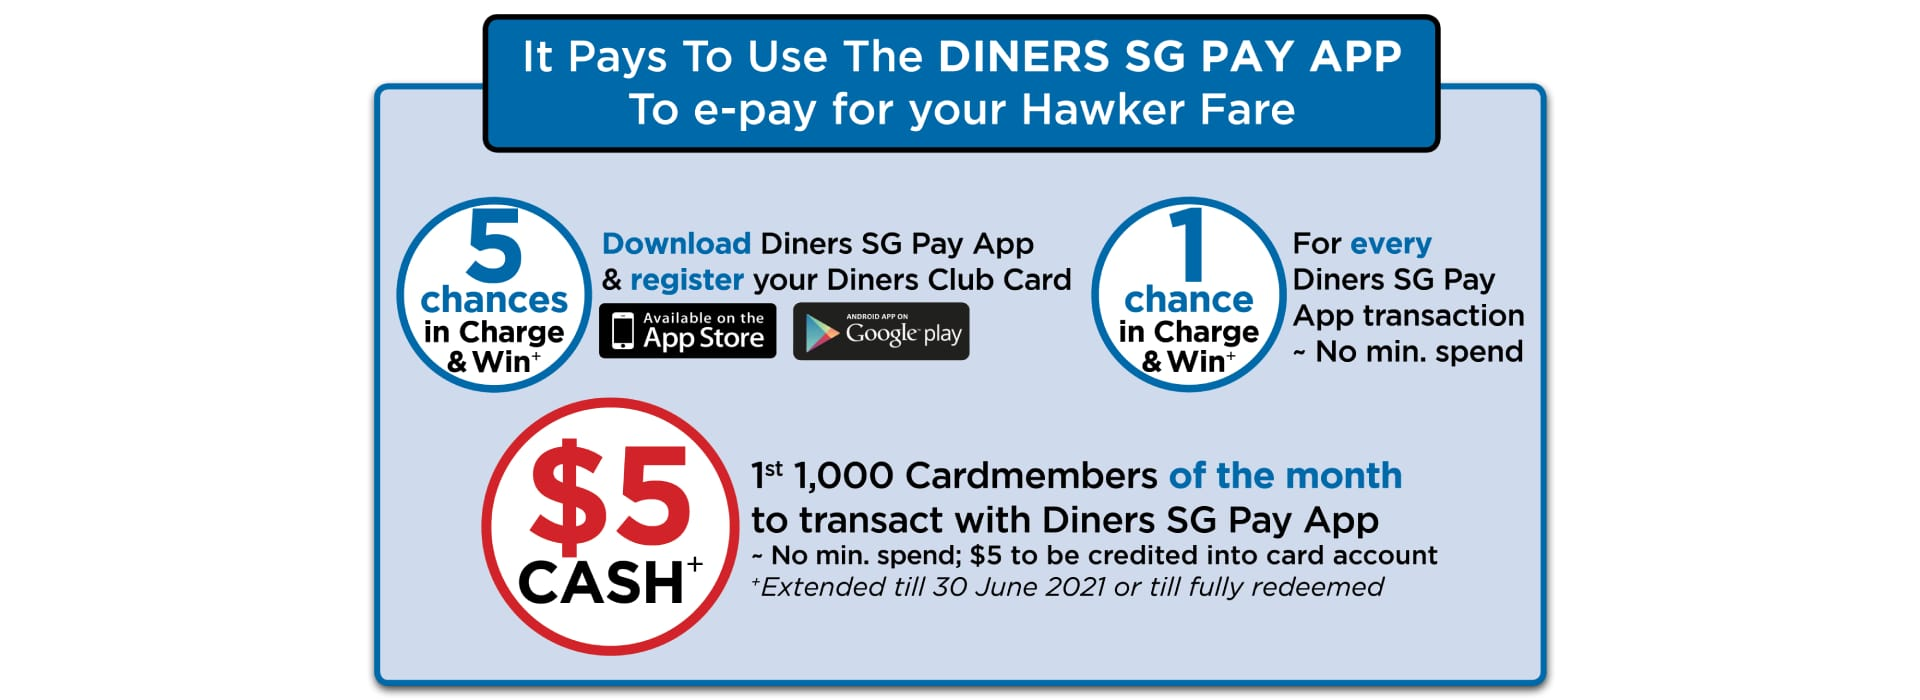 Diners SG Pay